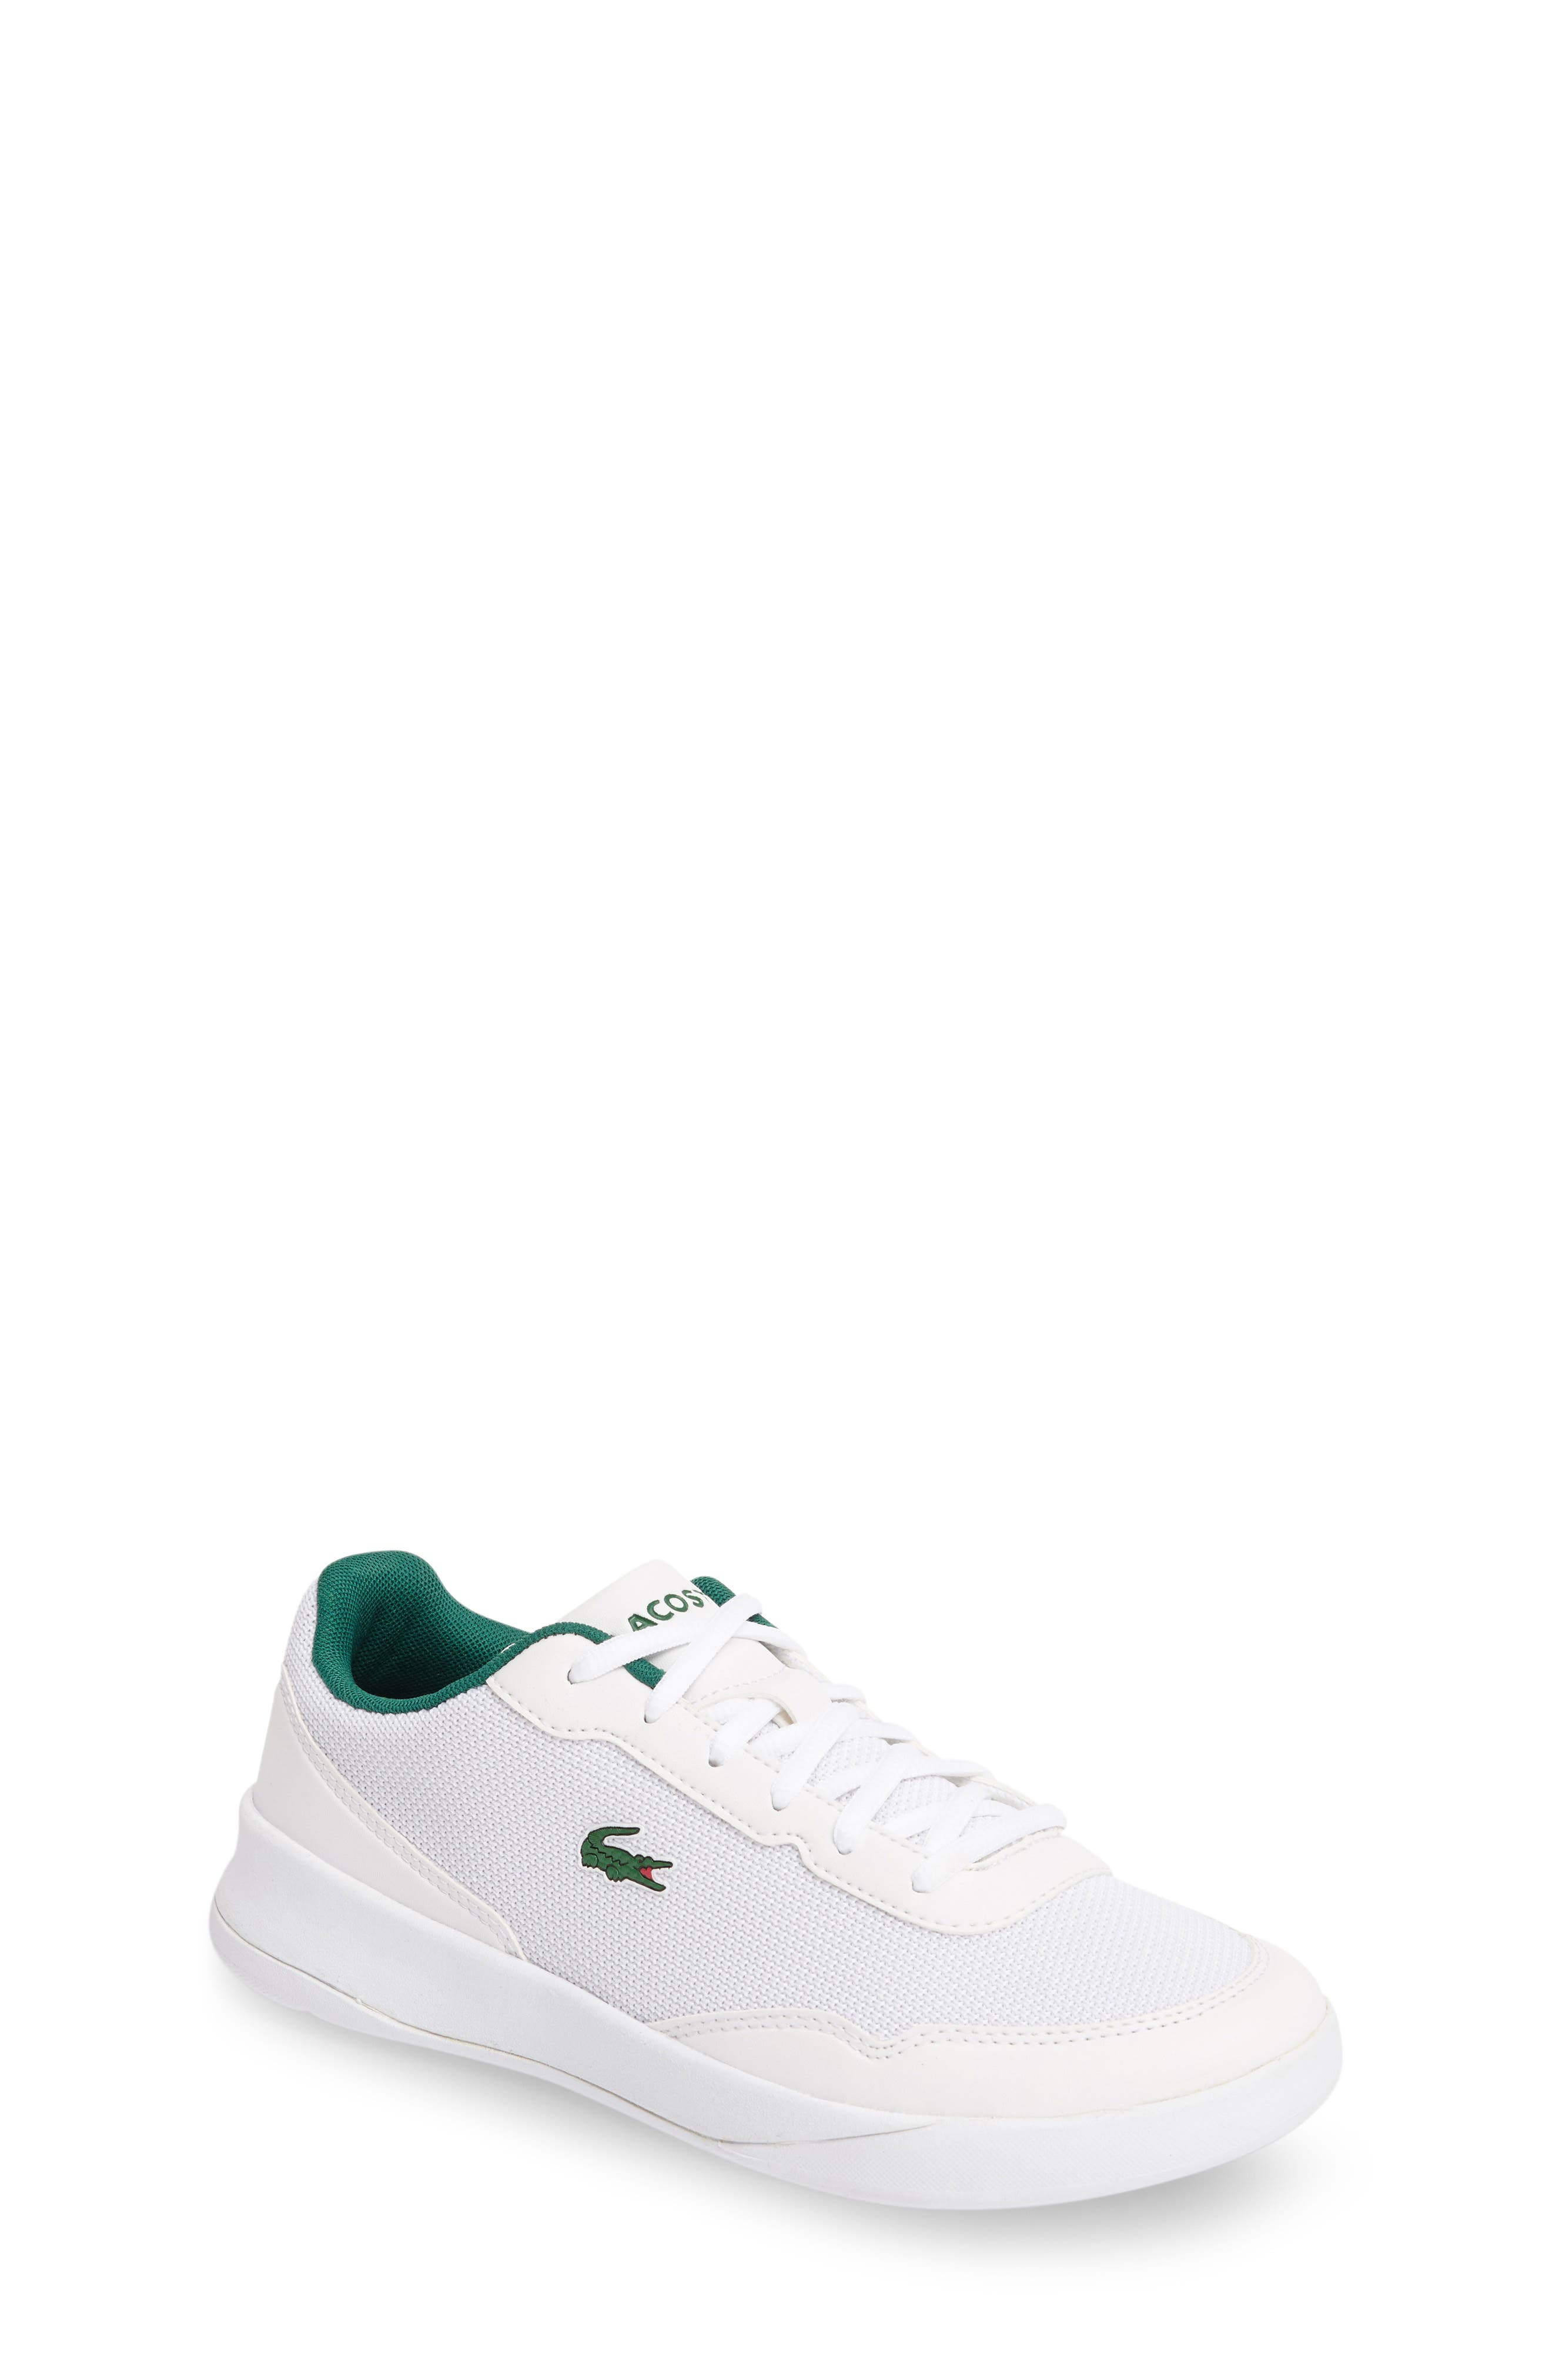 Lacoste LT Spirit Woven Sneaker (Little Kid & Big Kid)